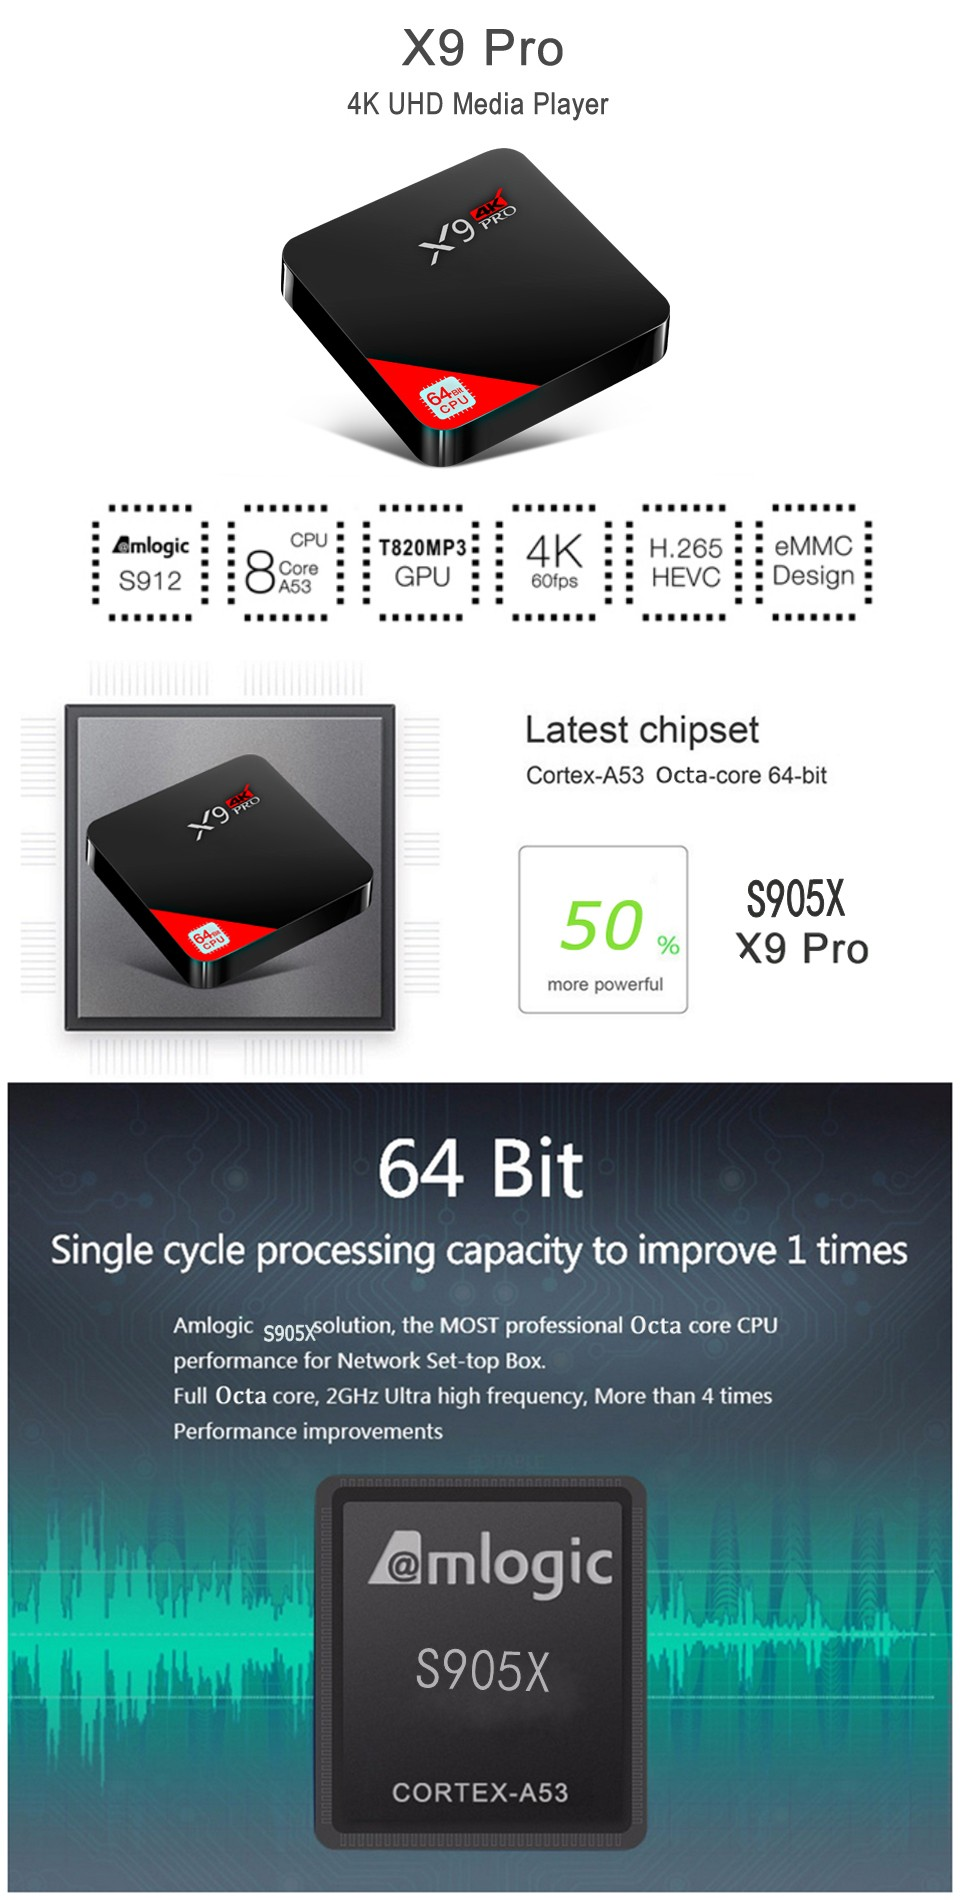 X9 Pro Best Selling Odm Streaming 4gb Ram 16gb Rom Router Android Tv Box  Webcam With Skype - Buy 4gb Ram 16gb Rom Android Tv Box,Android 4 2 Tv Box